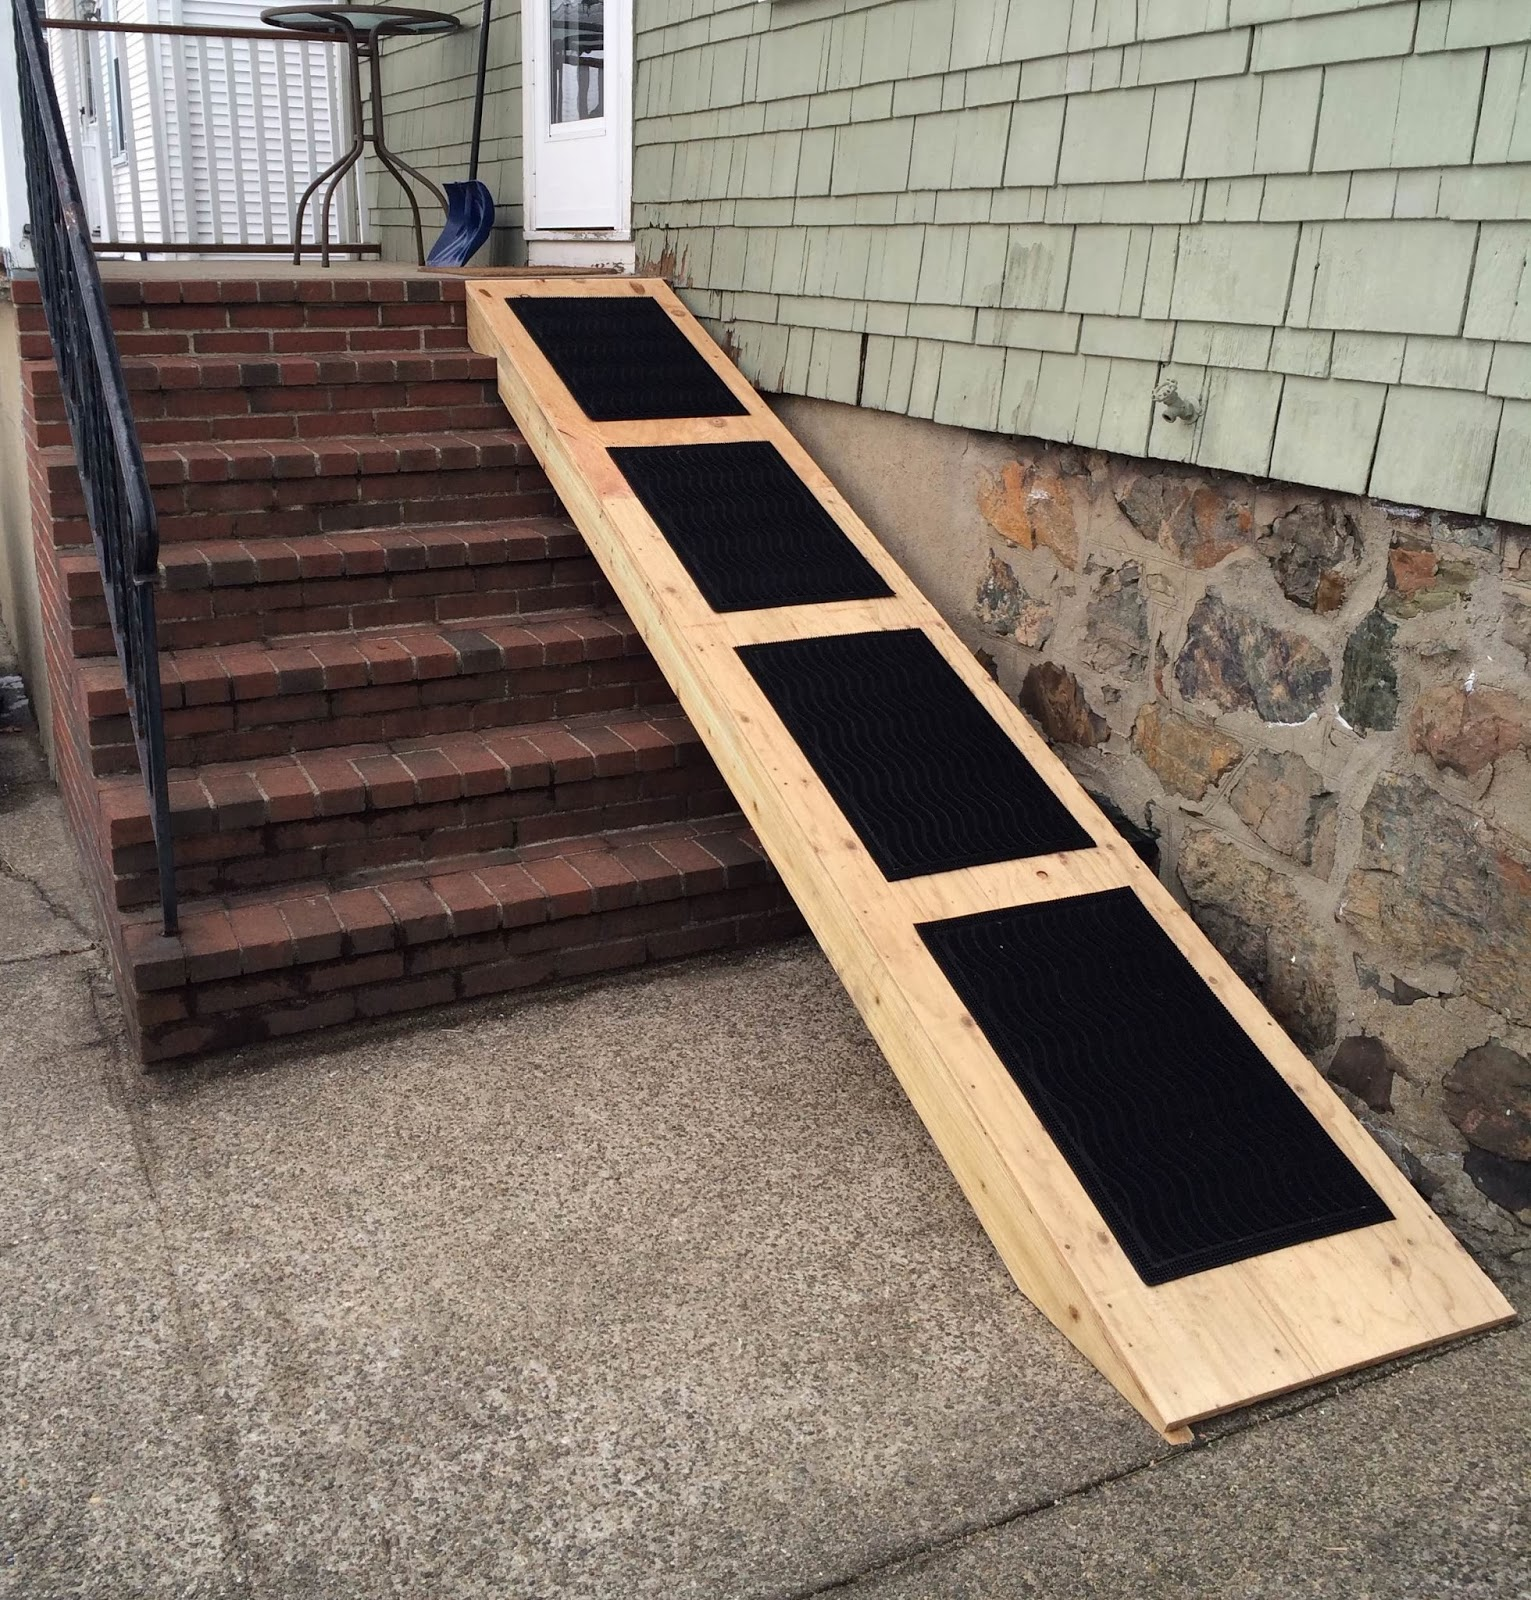 How to Build a Dog Stairs